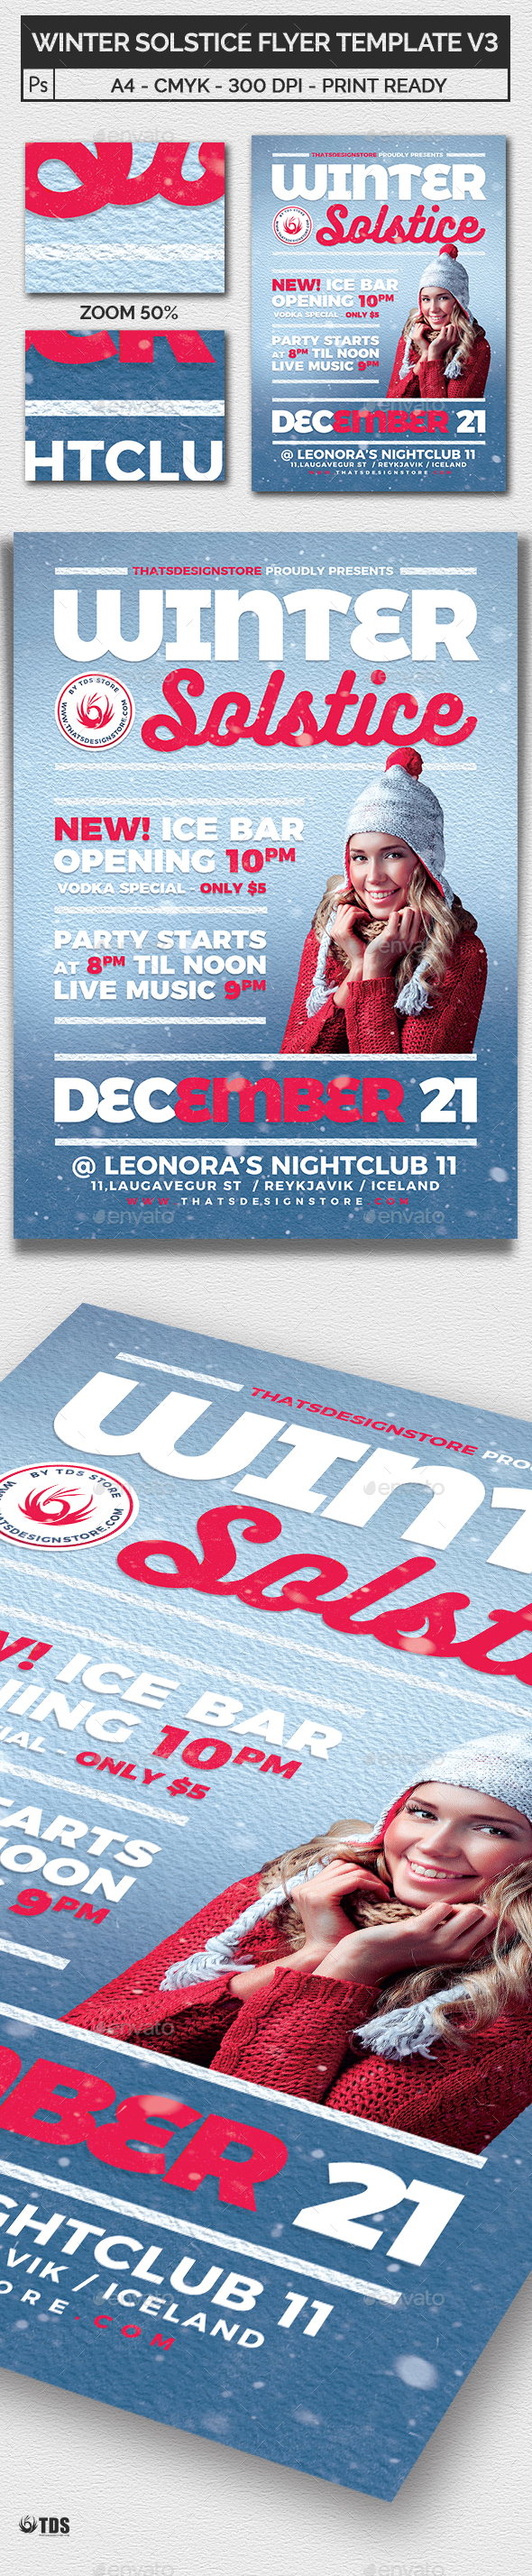 Winter Solstice Flyer Template V3 - Clubs & Parties Events